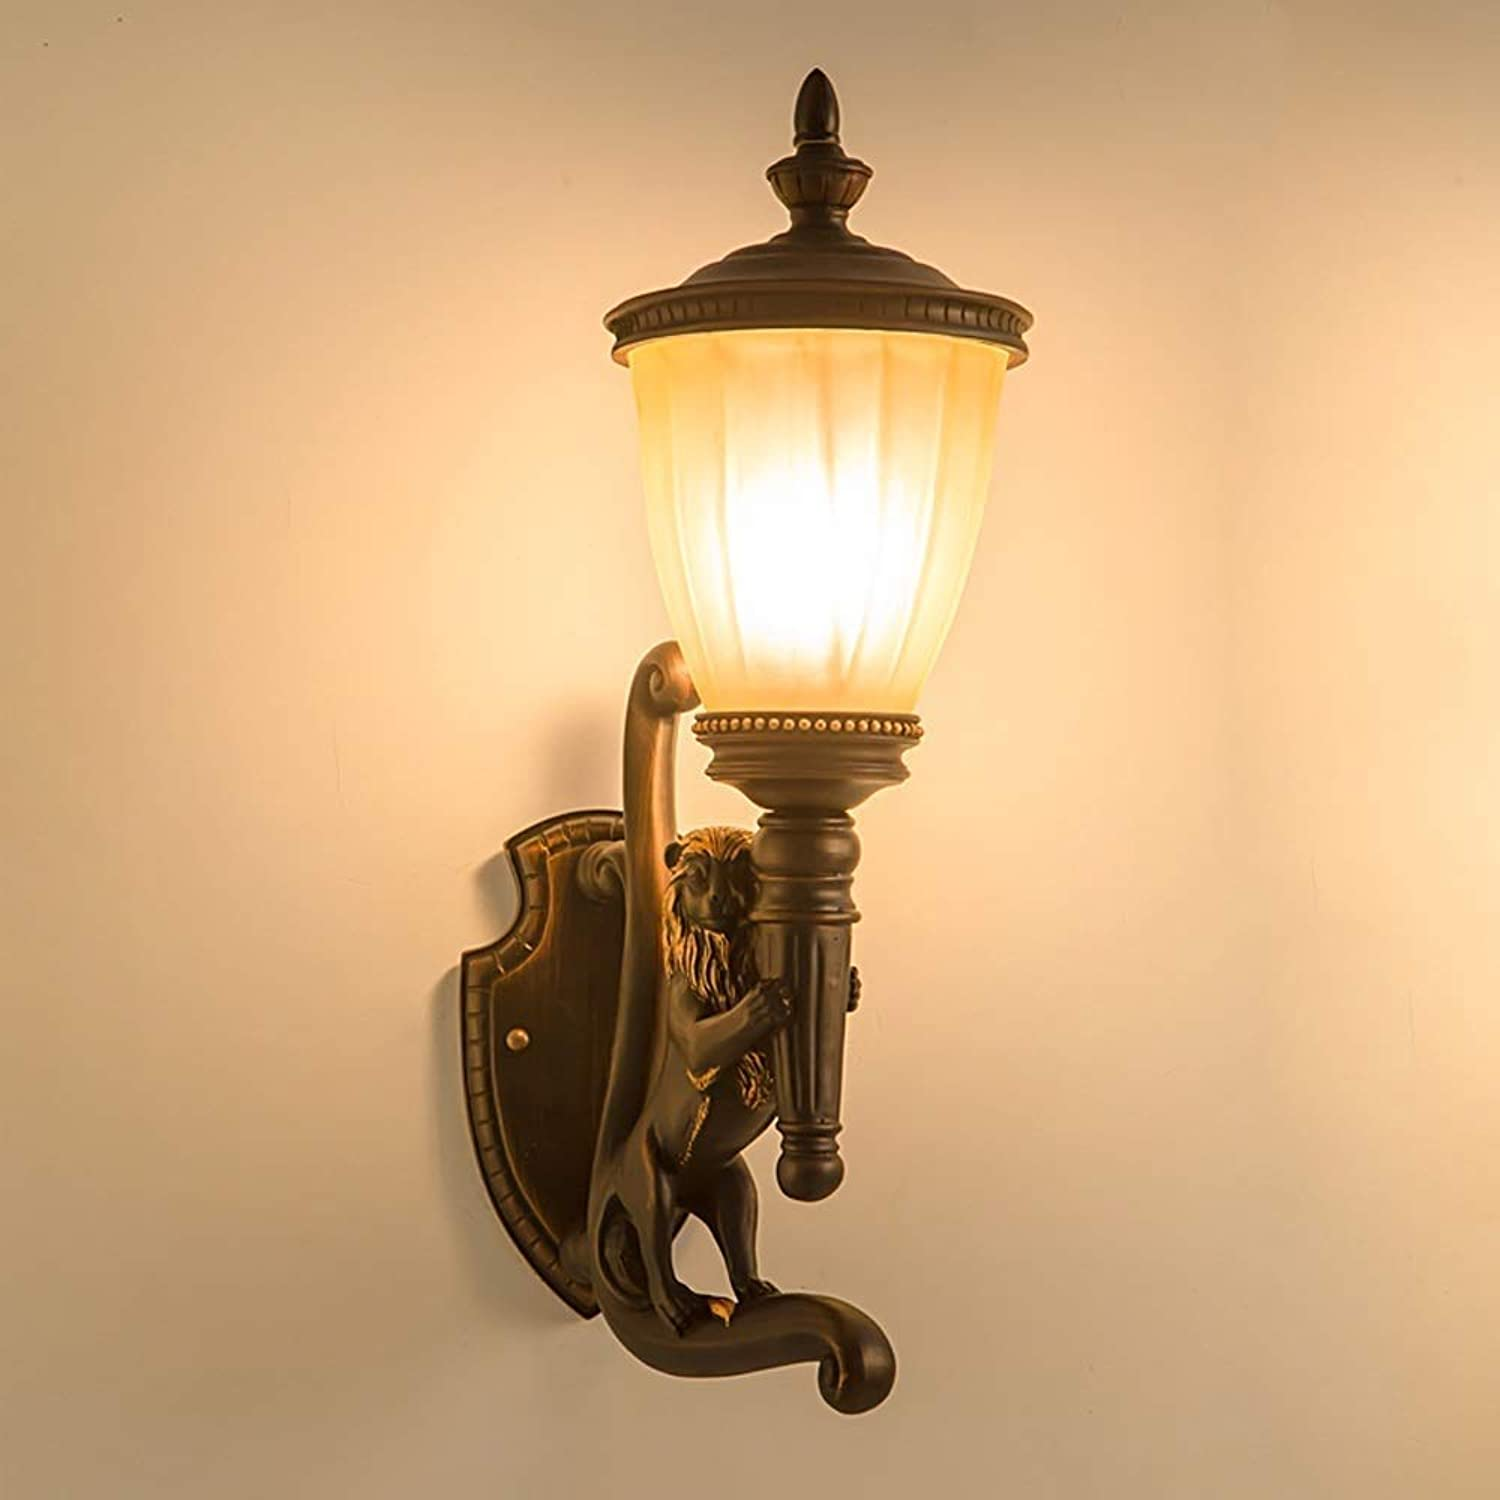 Perfect Home Fashion Creative Lion Outdoor Wall Lamp Retro Waterproof Balcony Patio Wall Light Vintage E27 Single Head Resin Glass Wall Sconce for Front Door Garden Exterior Wall Villa Aisle (Size   L